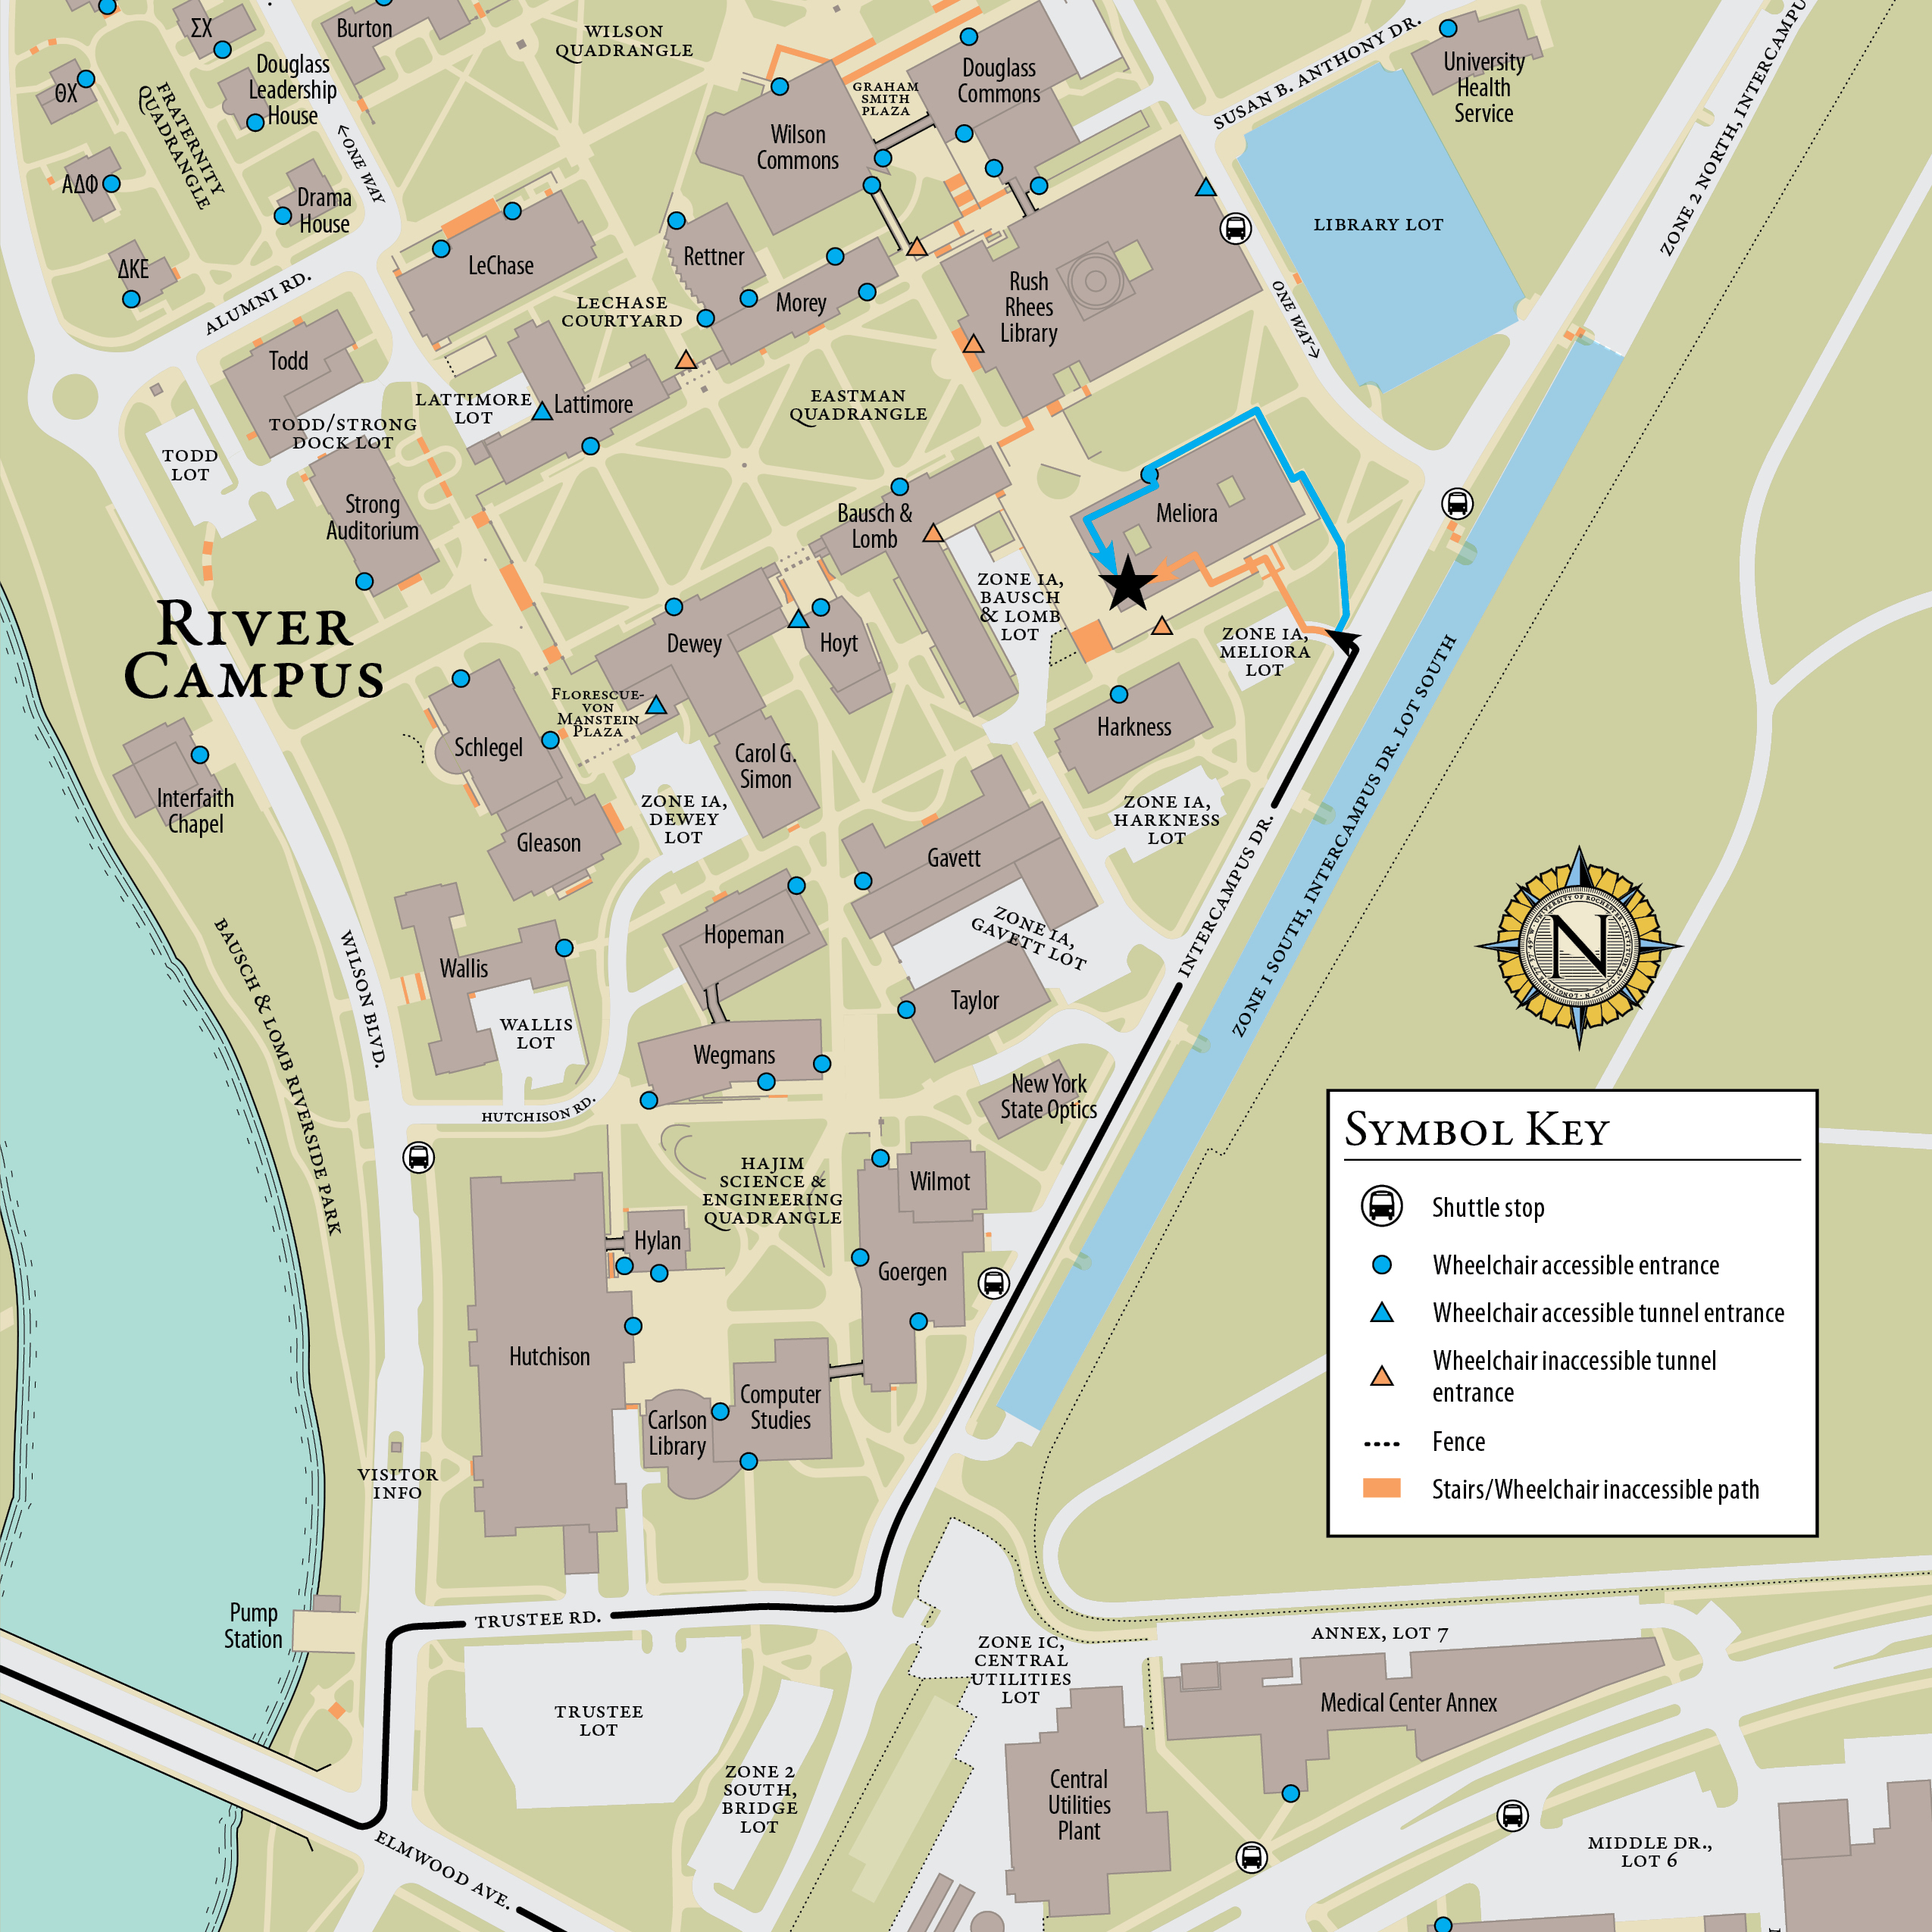 U Of R Campus Map Contact | The Susan B. Anthony Center